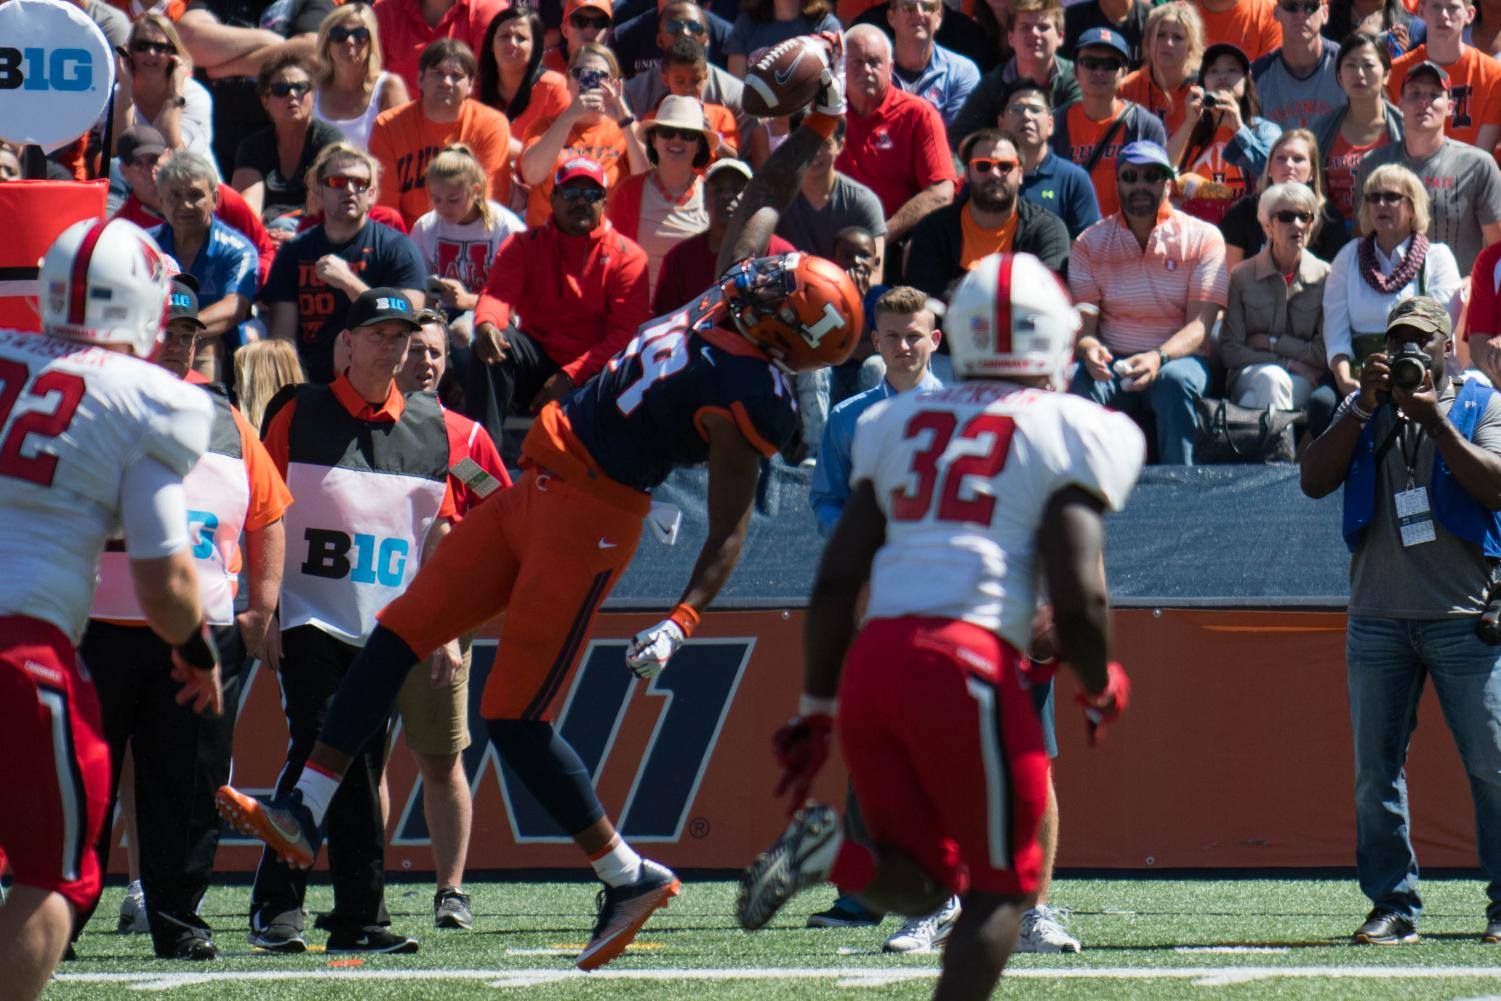 Illinois tight end Louis Dorsey makes a one-catch against Ball State in the Illini's matchup against the Cardinals on September 2. The Illini won 24-21. Dorsey is one of Illinois' true freshmen who made the cut for BTN's All-Freshman team.